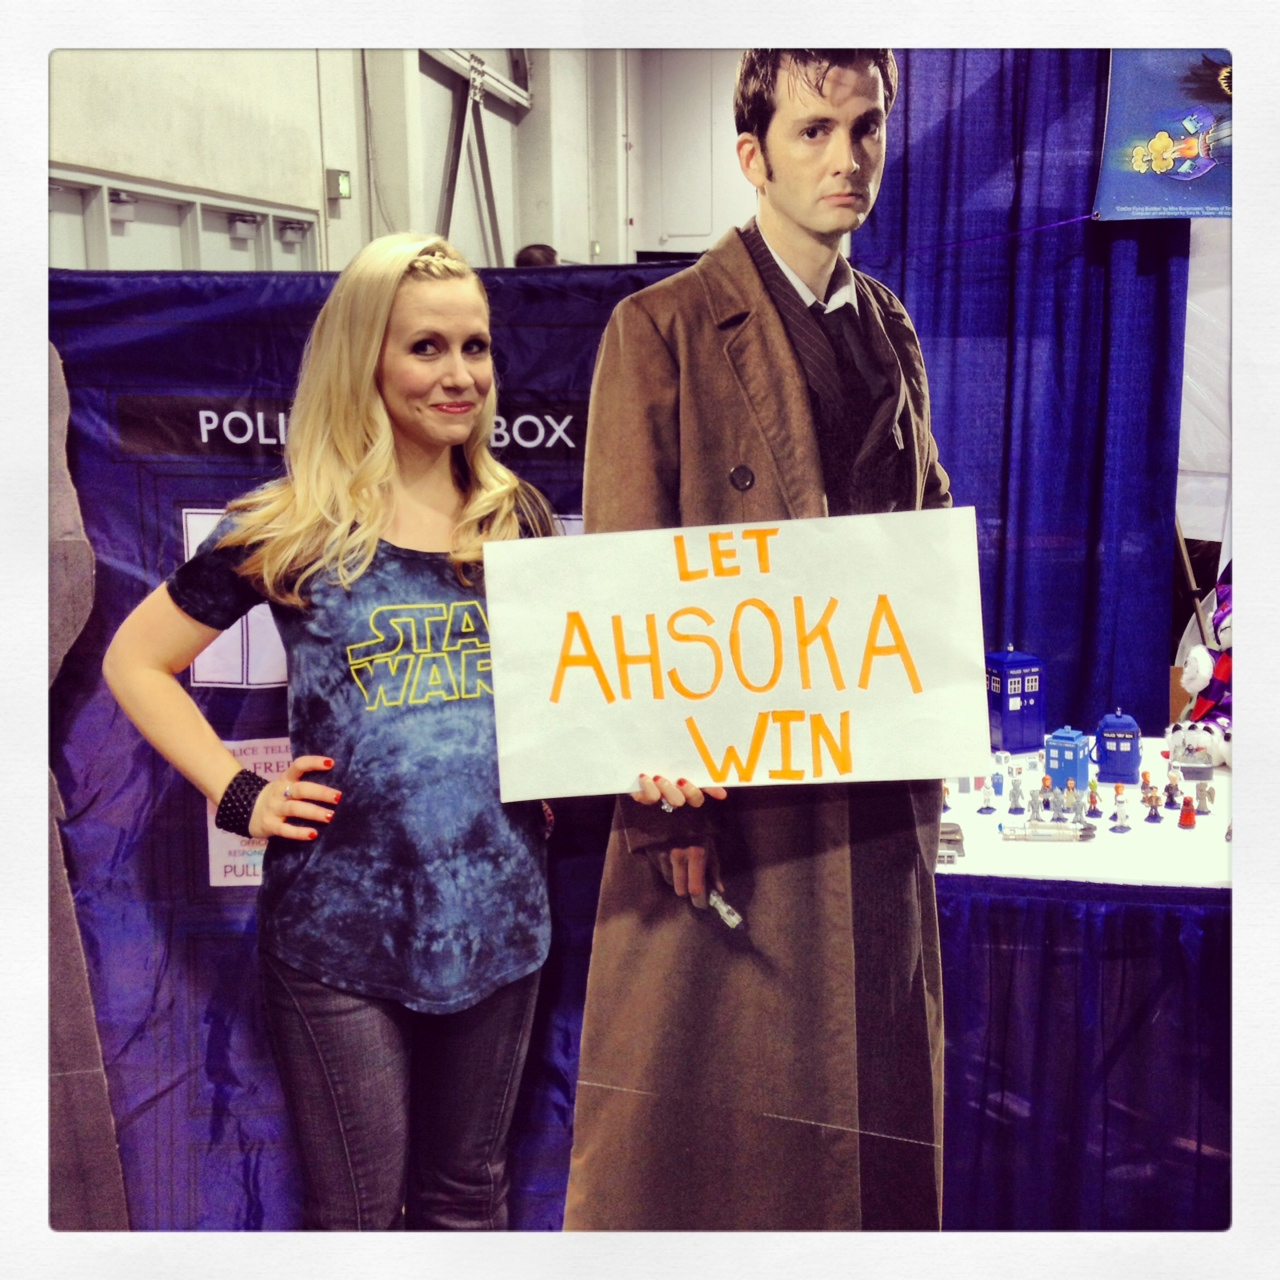 David Tennant is NOT Amused by the thought of Ahsoka losing!